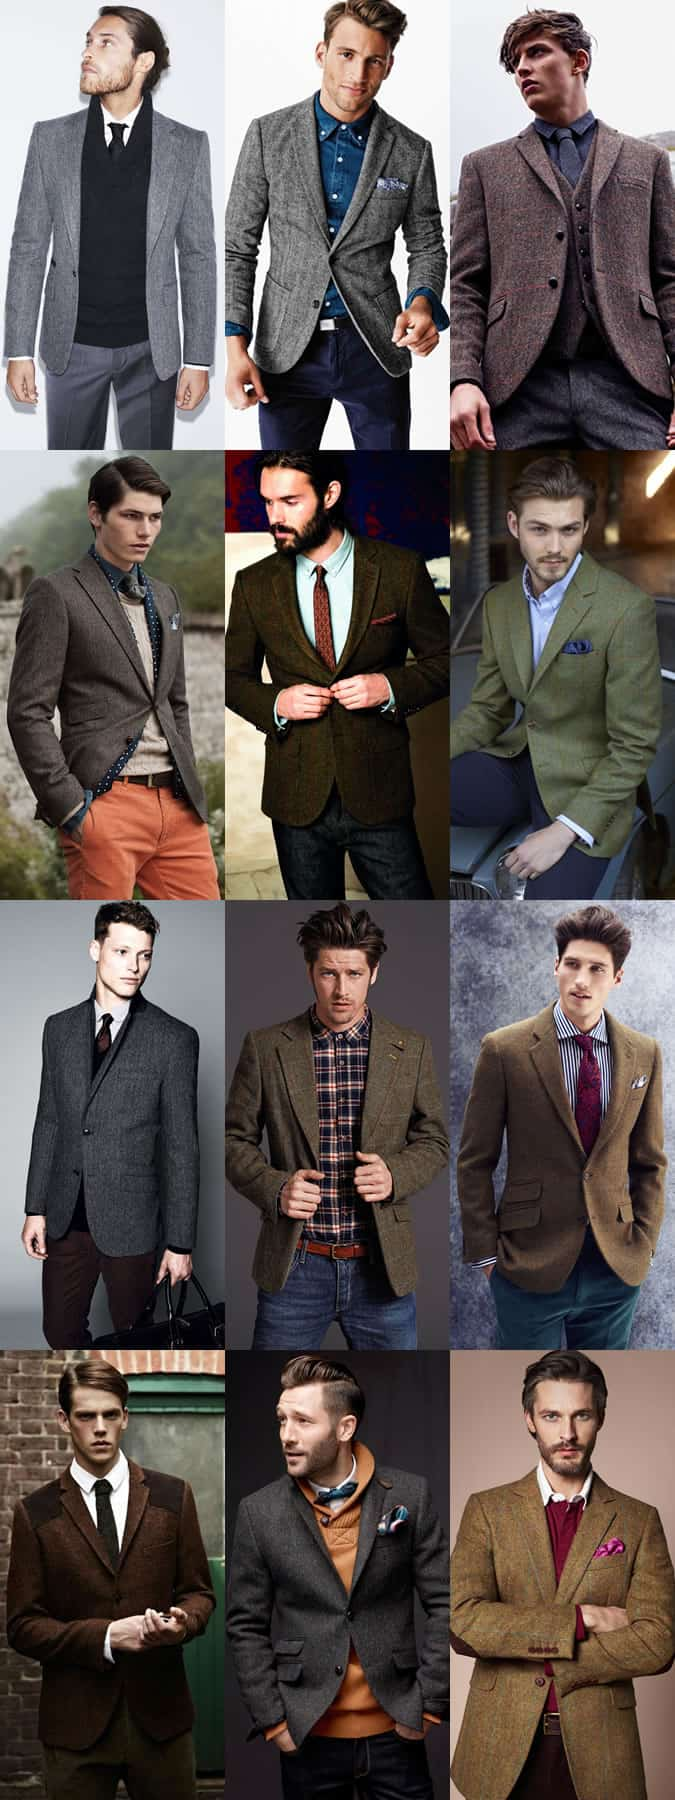 Men's Tweed Blazer Outfit Inspiration Lookbook